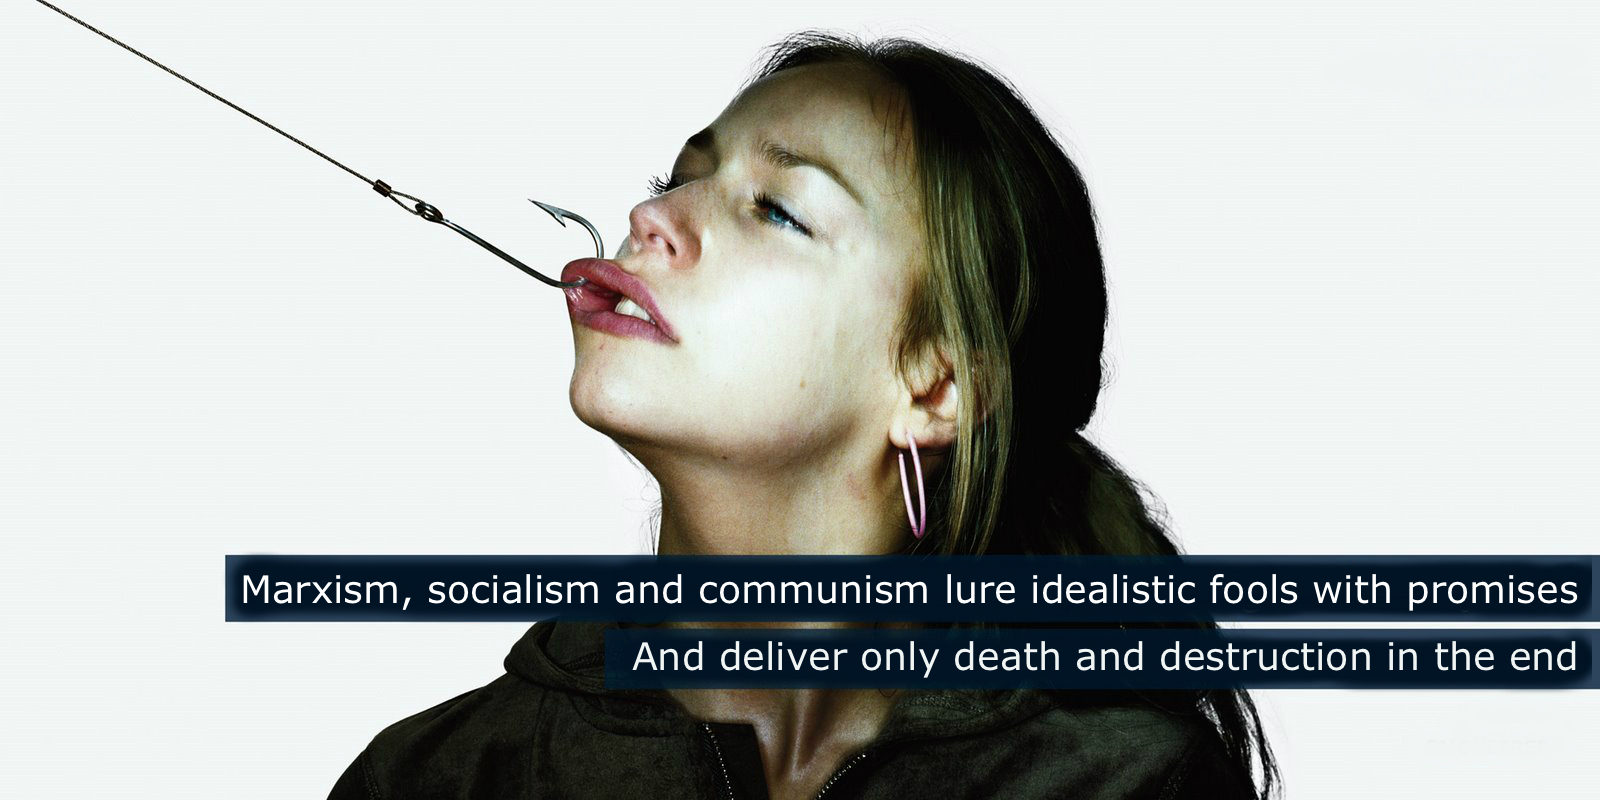 Marxism-Socialism-Communism-Promises-Destruction